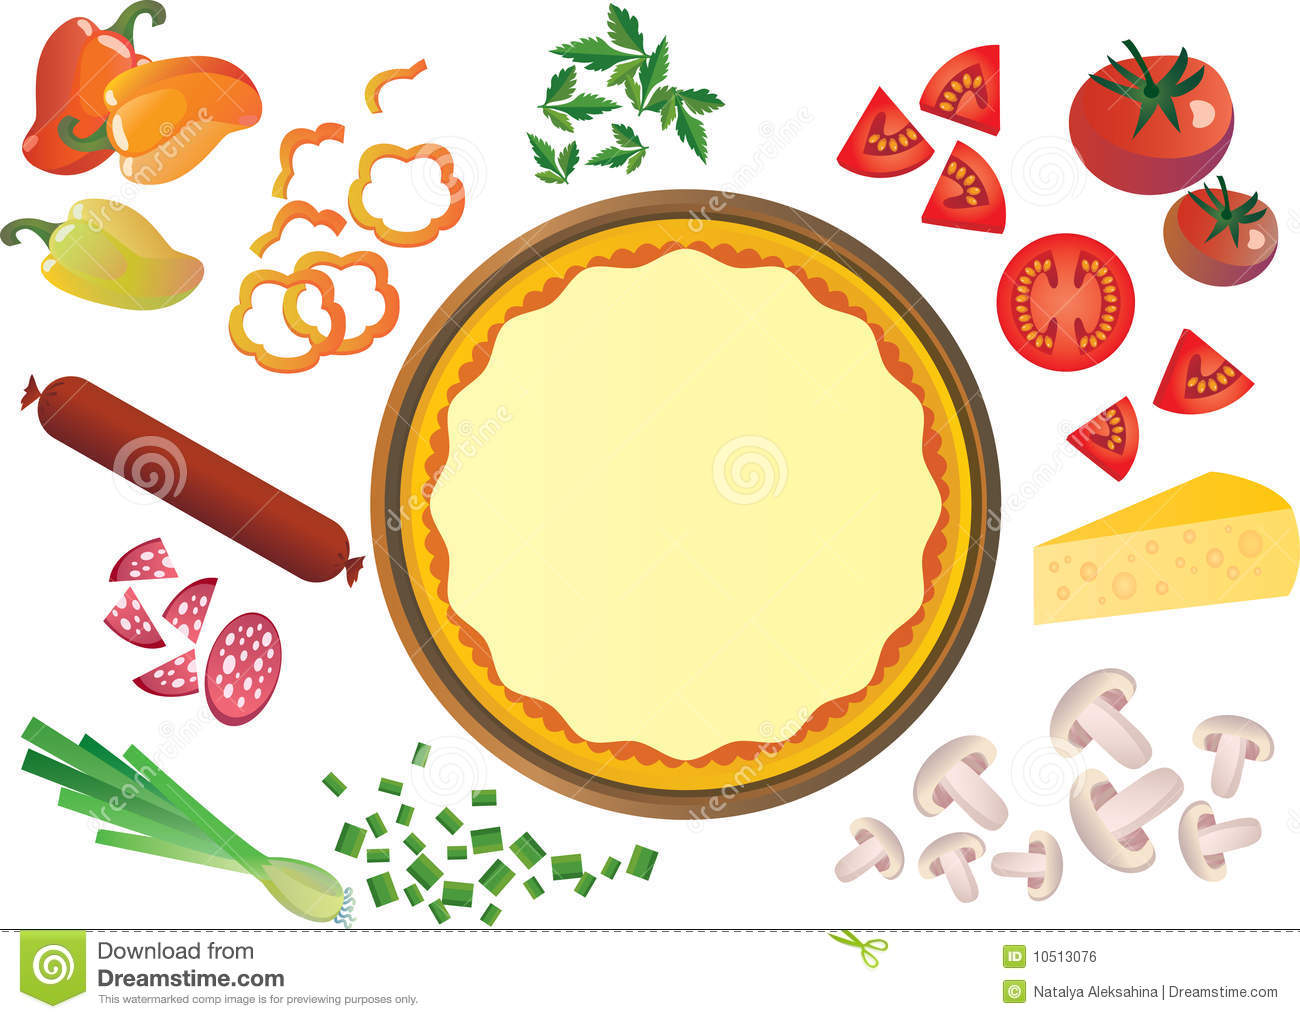 Pizza base clipart royalty free library 50+ Pizza Toppings Clipart | ClipartLook royalty free library